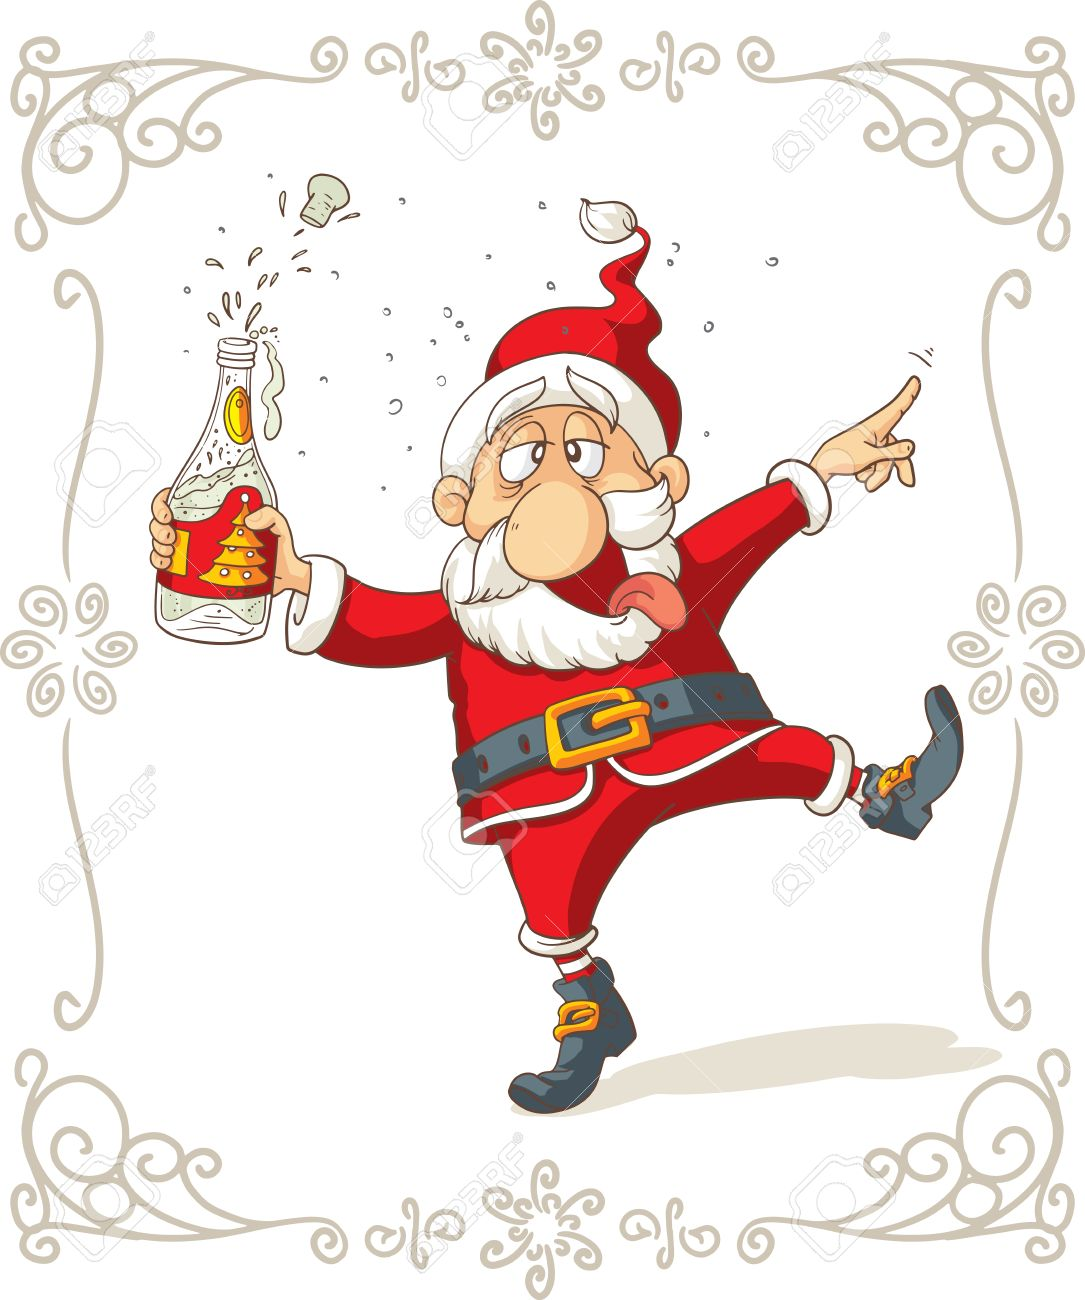 Drunk Santa Dancing Cartoon Royalty Free Cliparts Vectors And